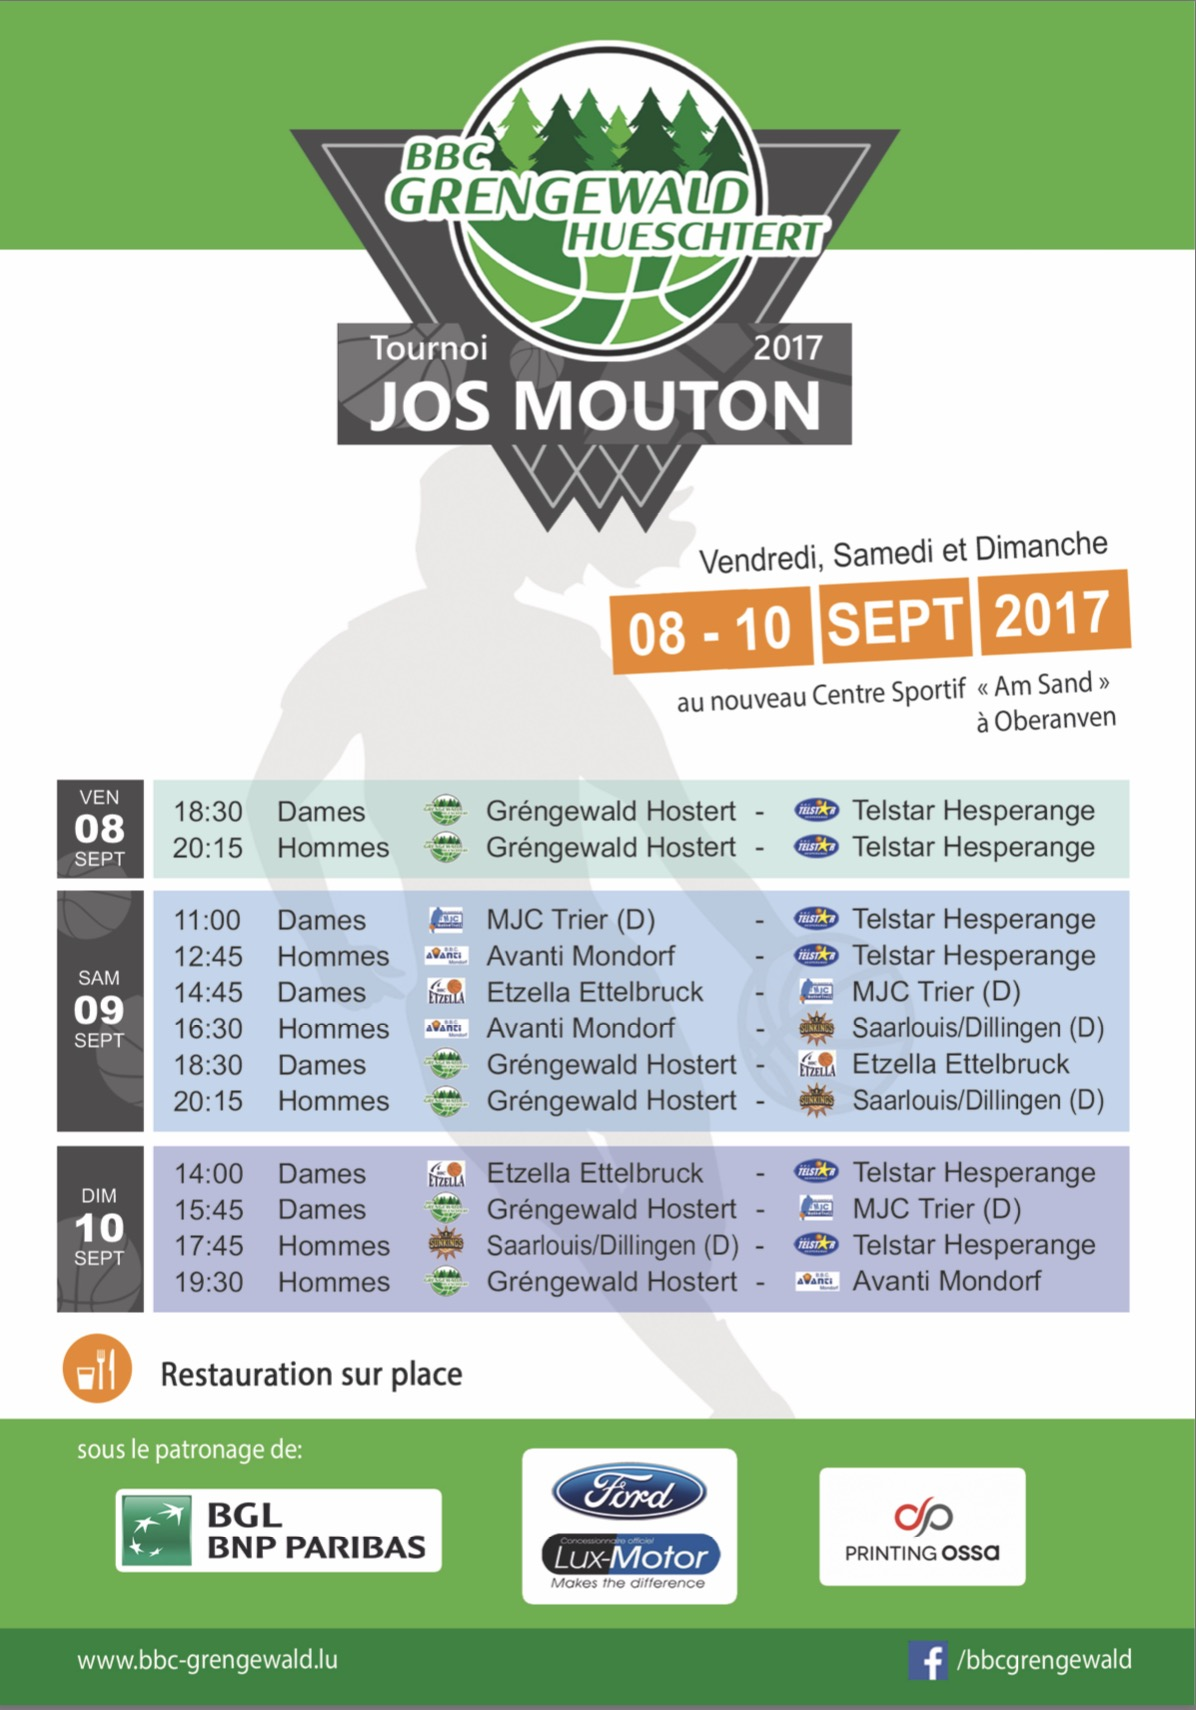 Tournoi Jos Mouton 9.-11. September 2017